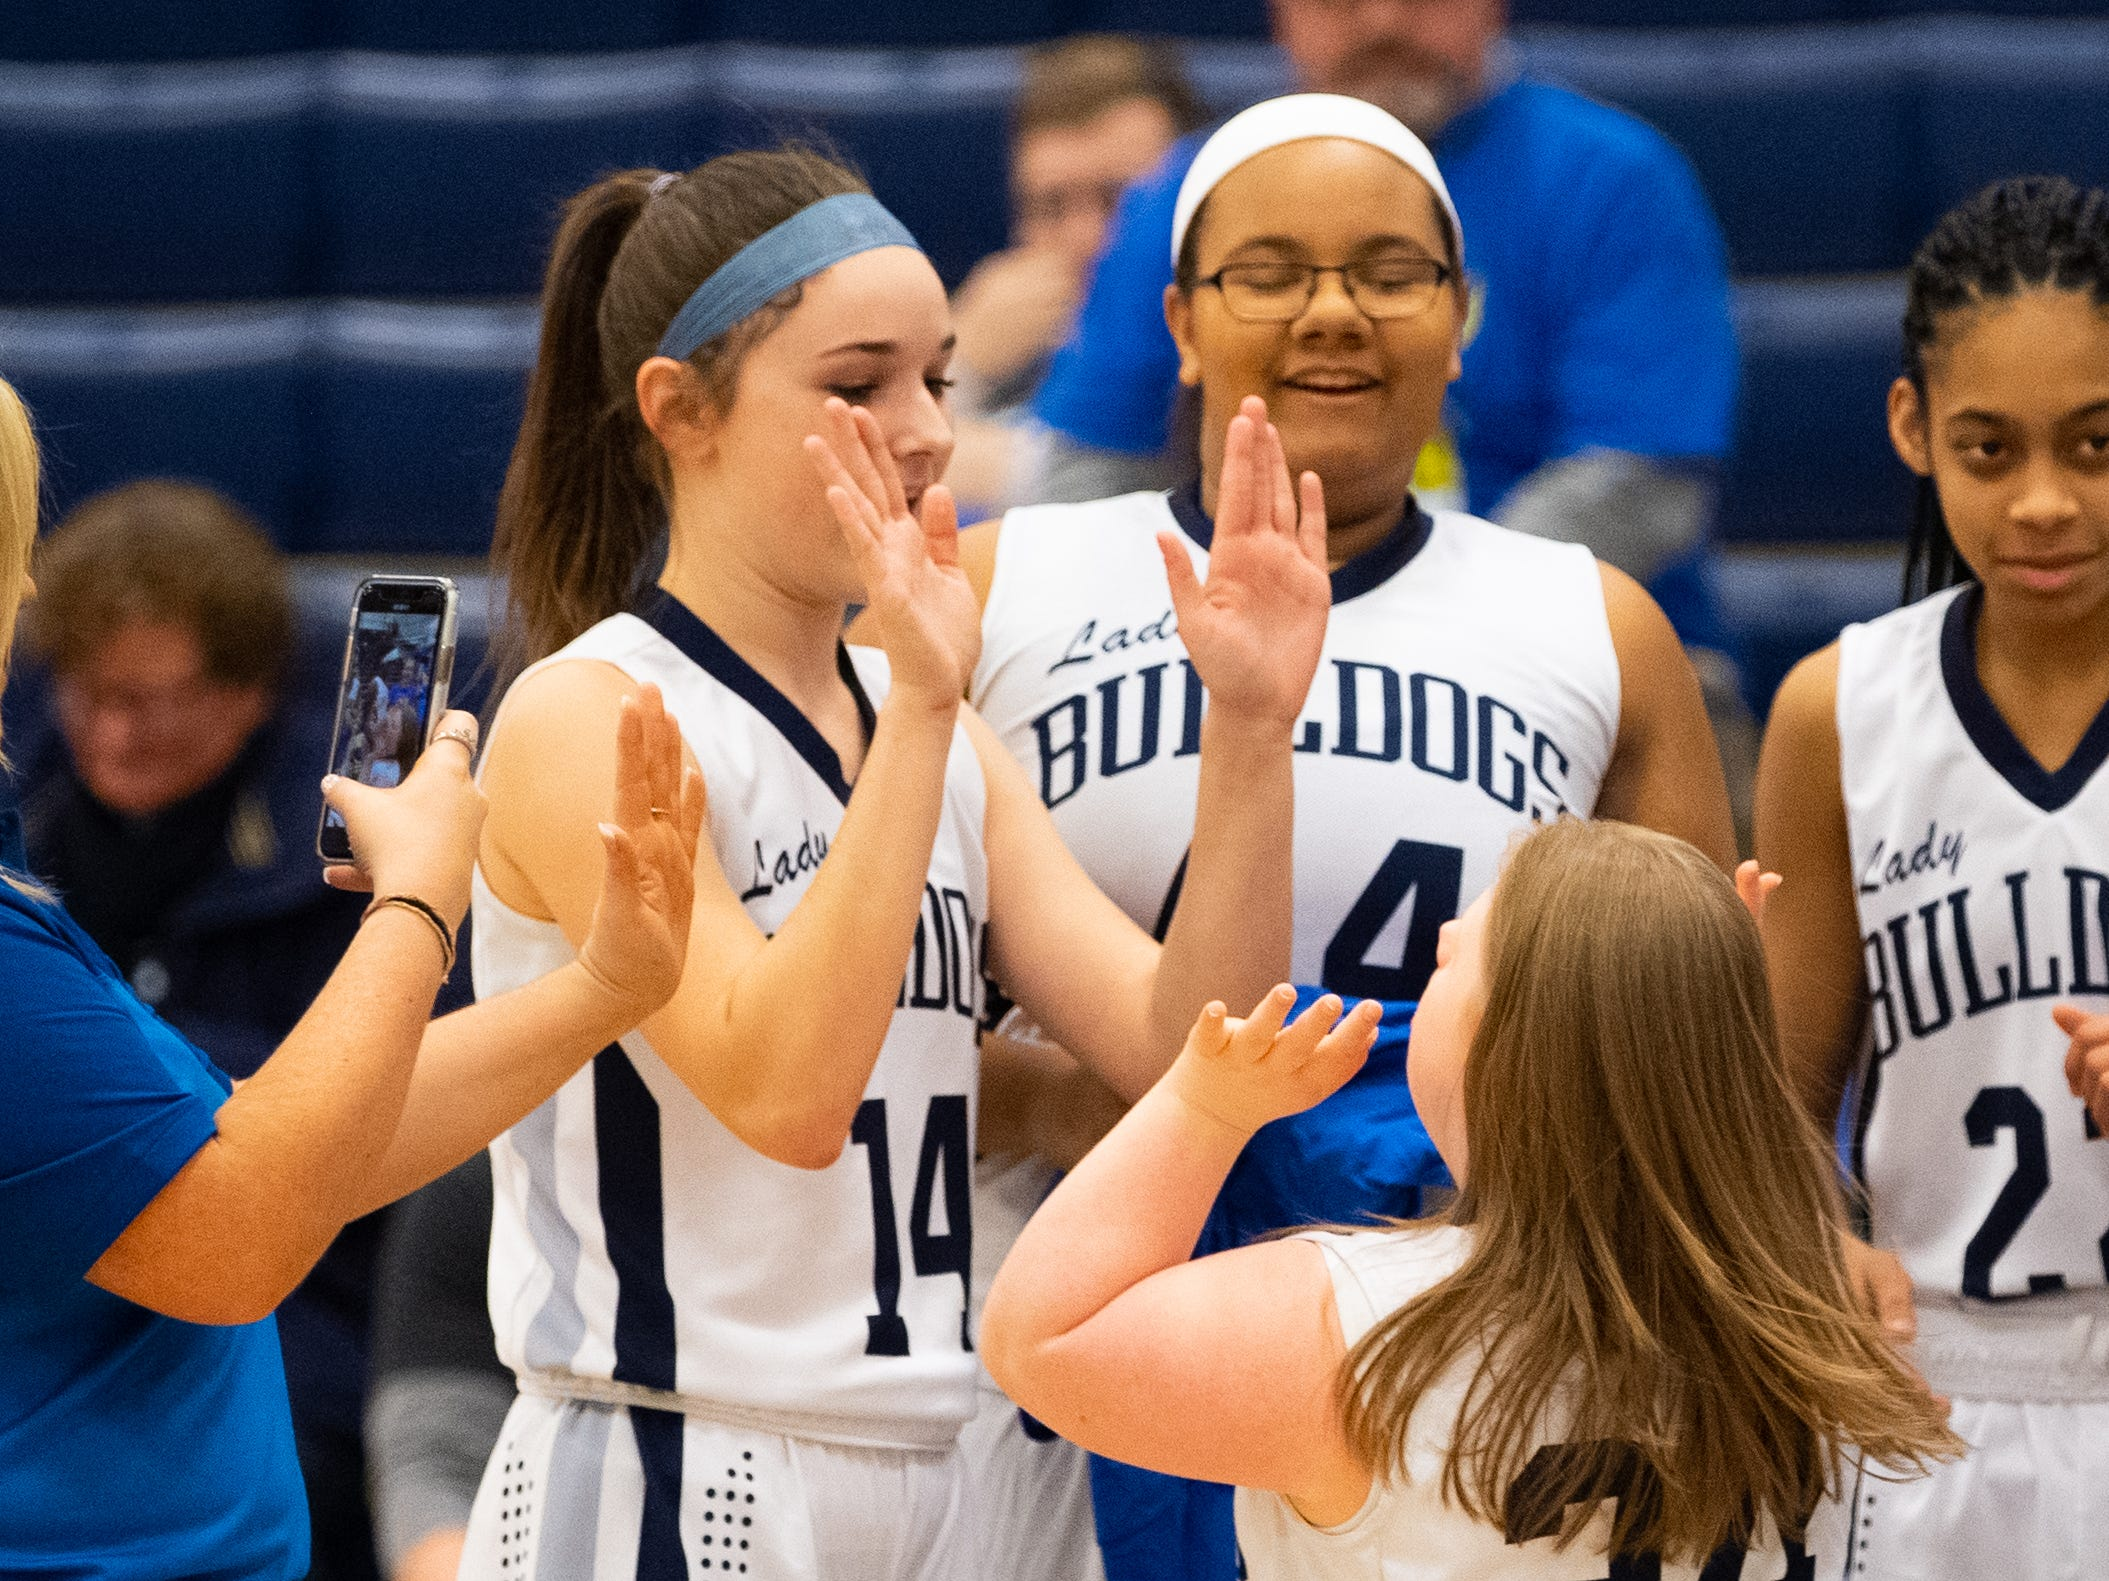 Katie Kniery (34) high-fives her teammates after taking the first few shots of the game, February 1, 2019 at West York Area High School.